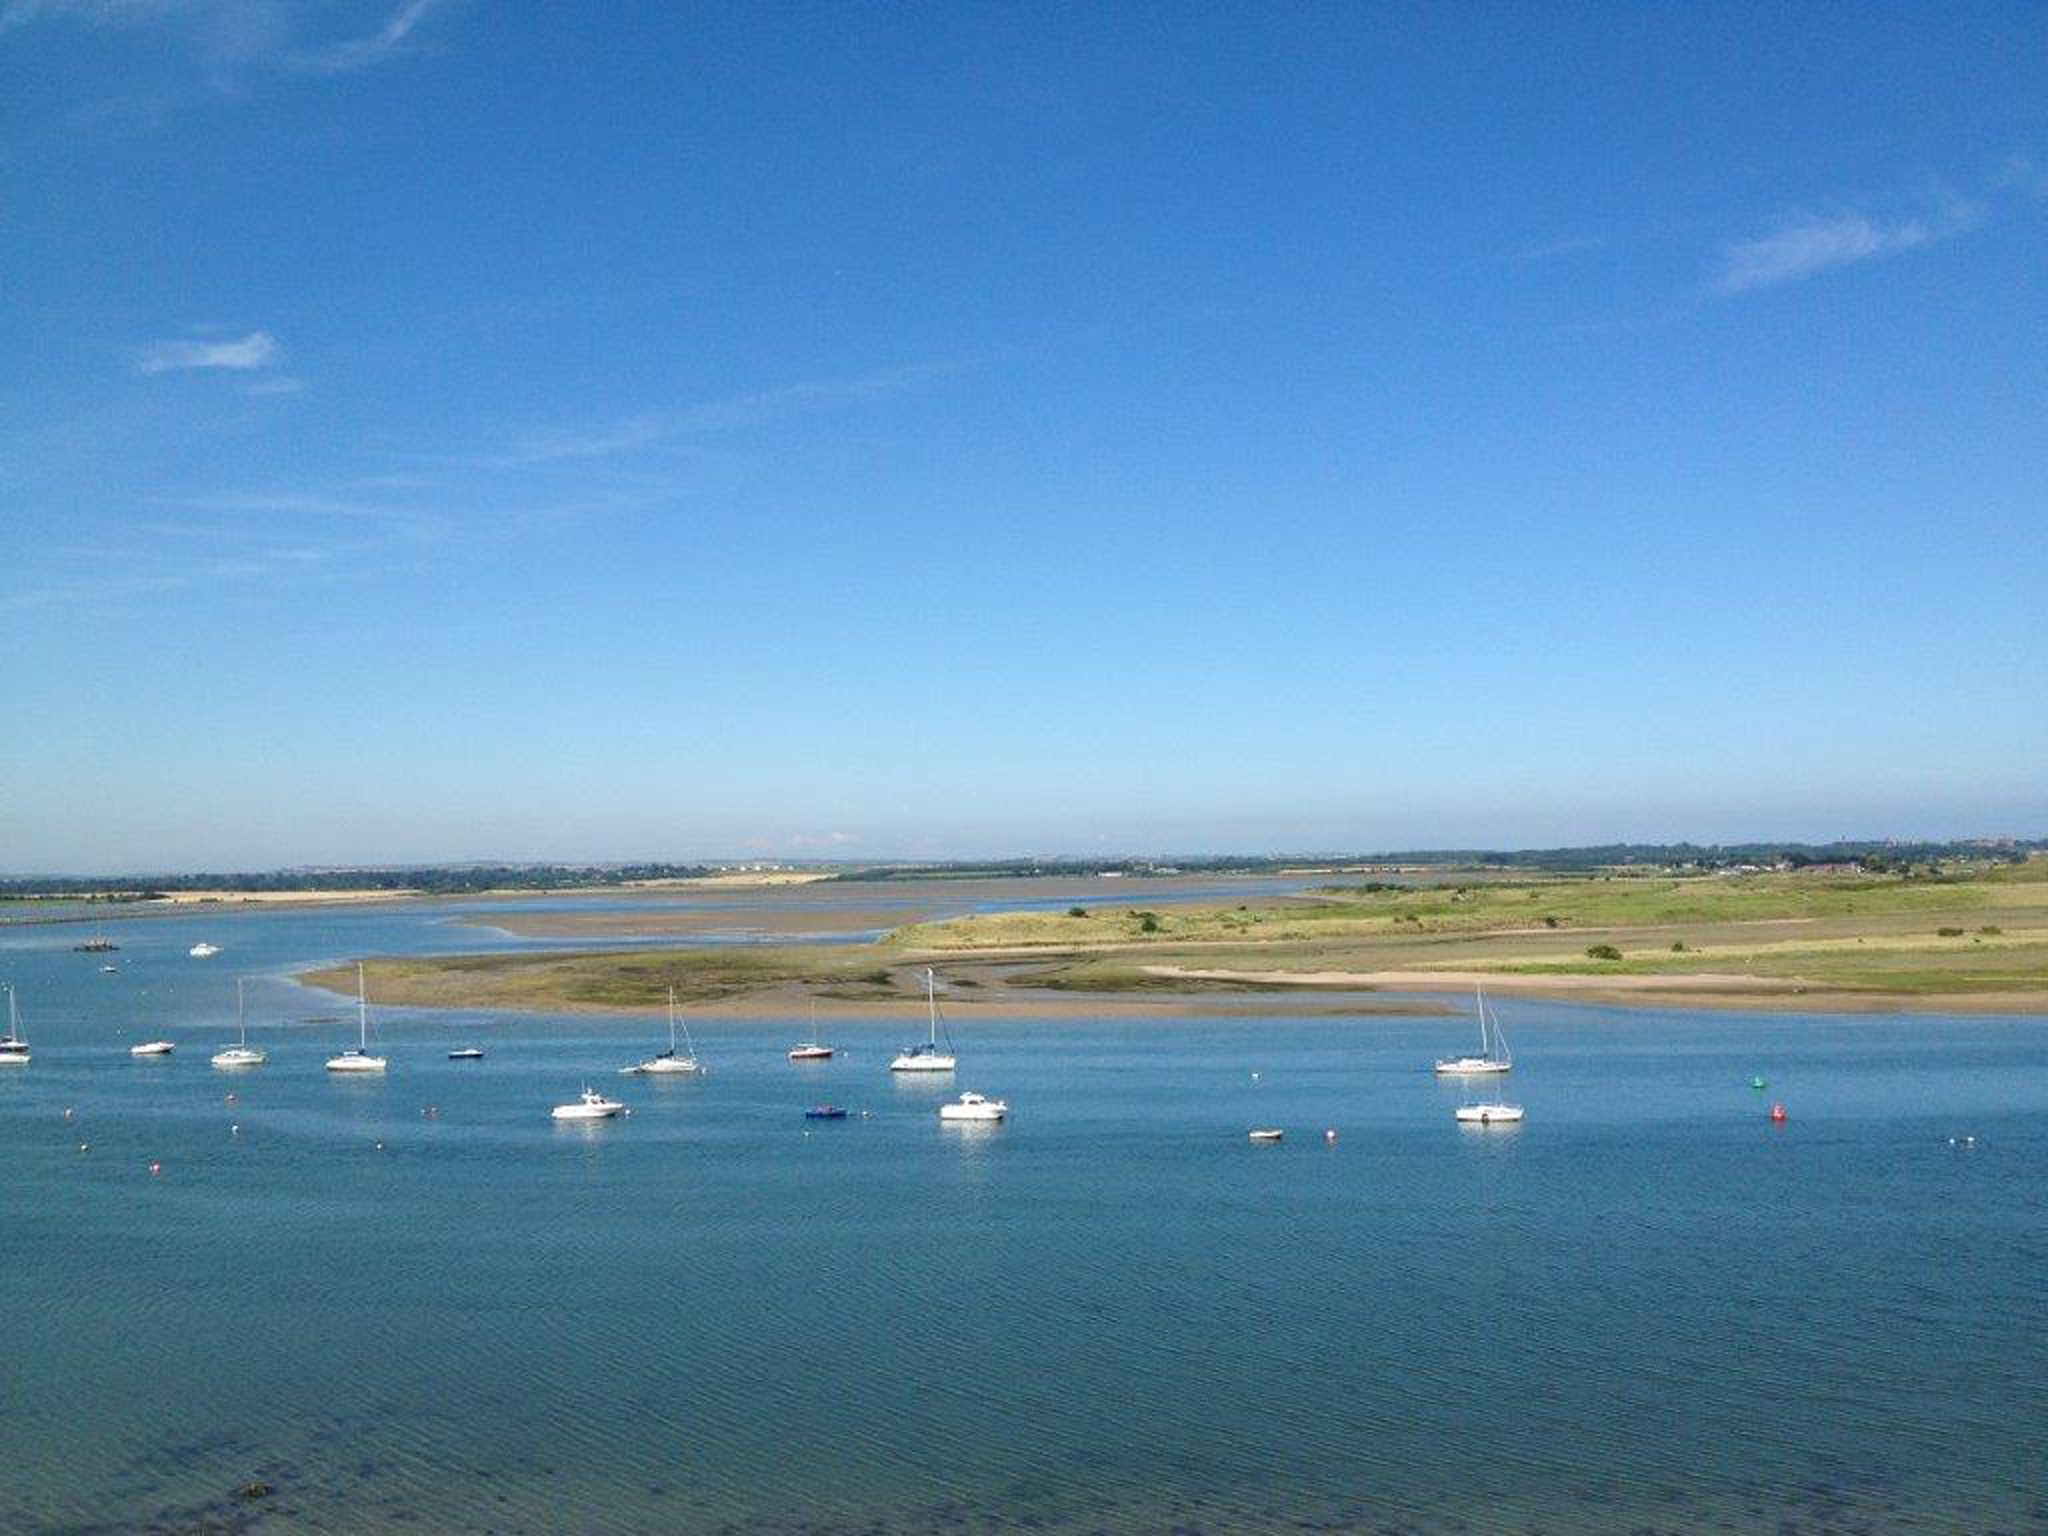 Malahide beach on a Summer day, overlooking small boats and the estuary